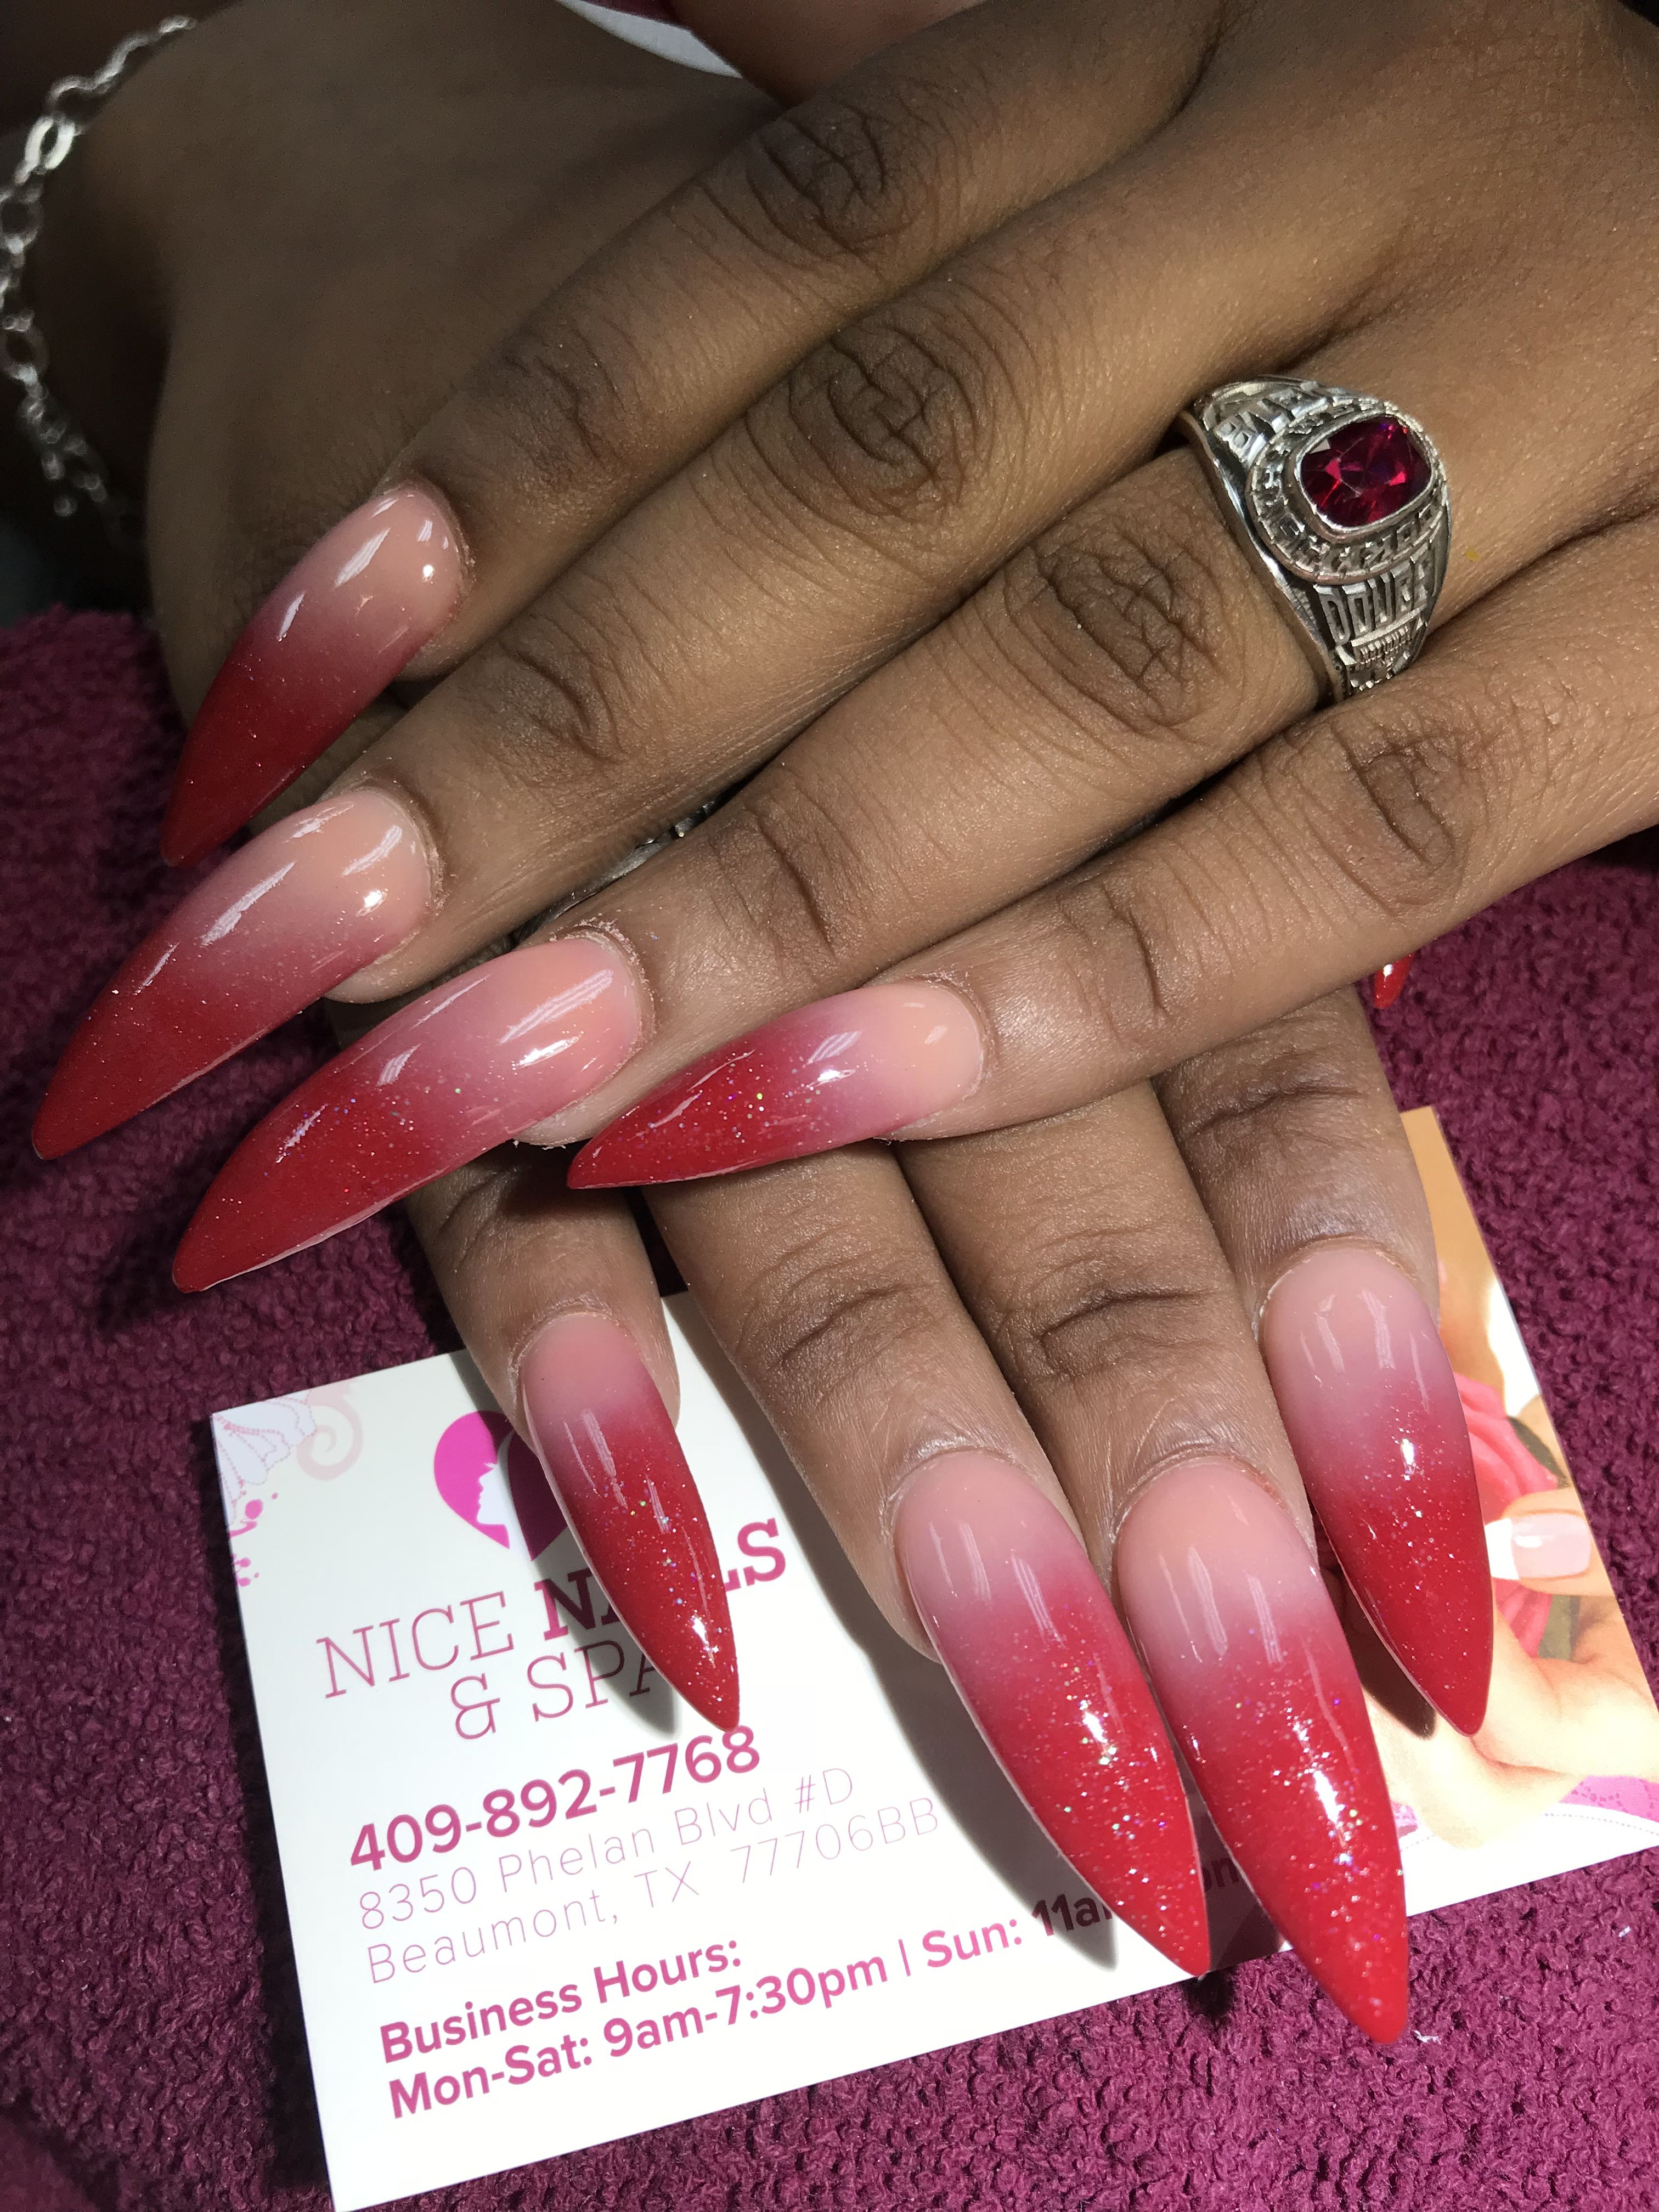 Nice Nails and Spa Beaumont, TX | Nice nails | Pinterest